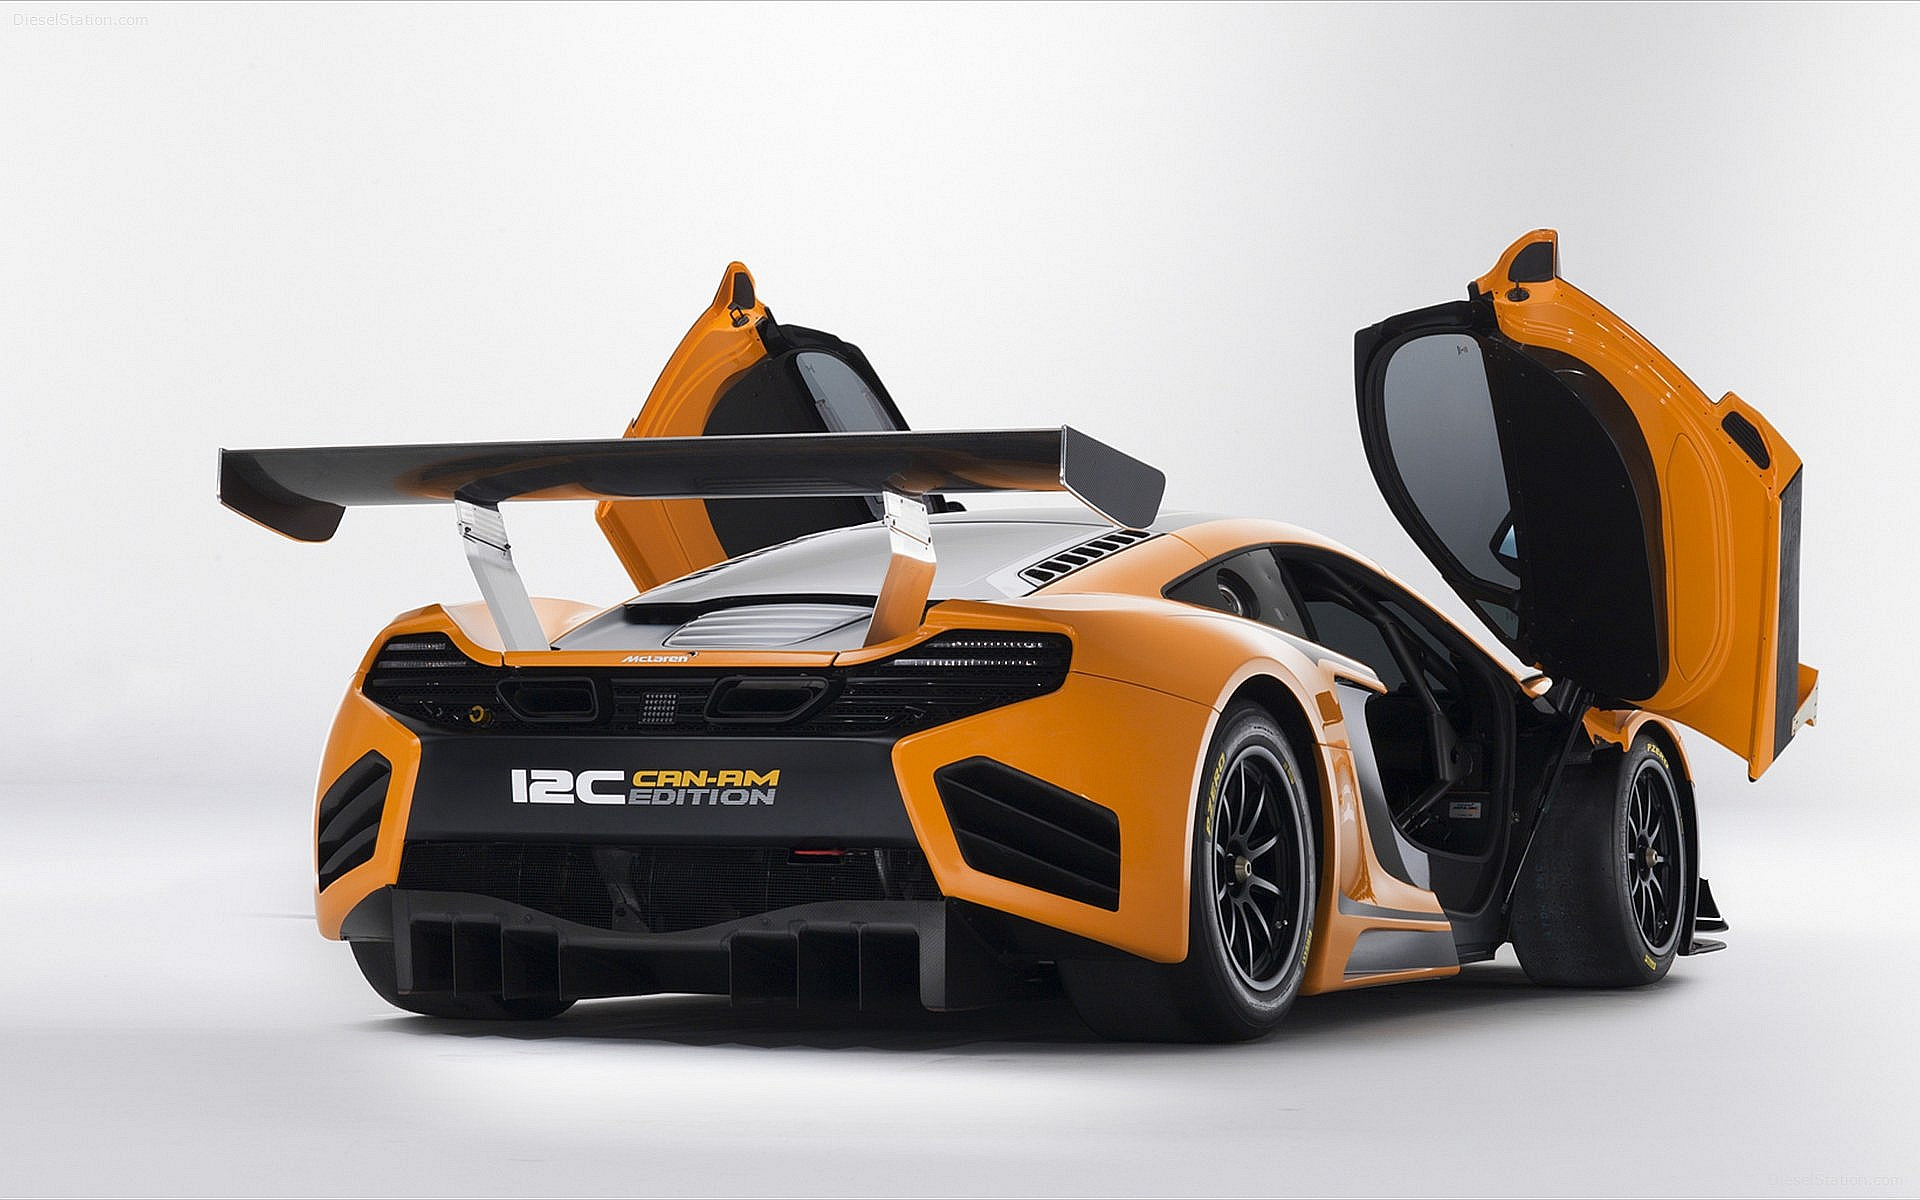 Mclaren 12 Racing Rear Pictures Photos Images High Resolution Wallpaper Free